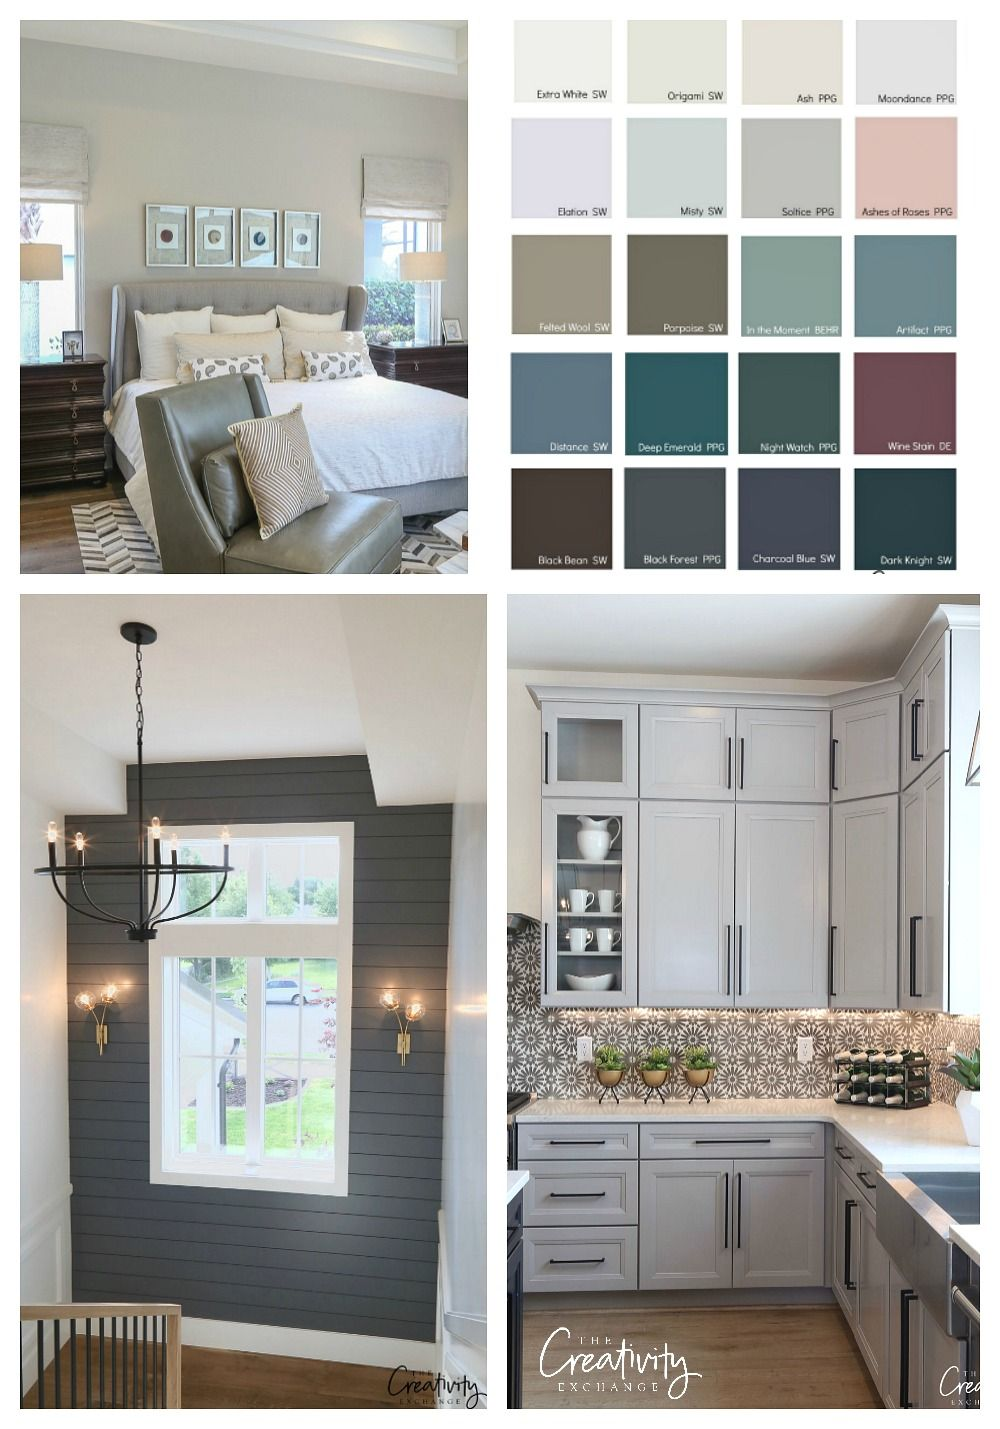 2019 paint color trends and forecasts all things home from stonegable trending paint. Black Bedroom Furniture Sets. Home Design Ideas